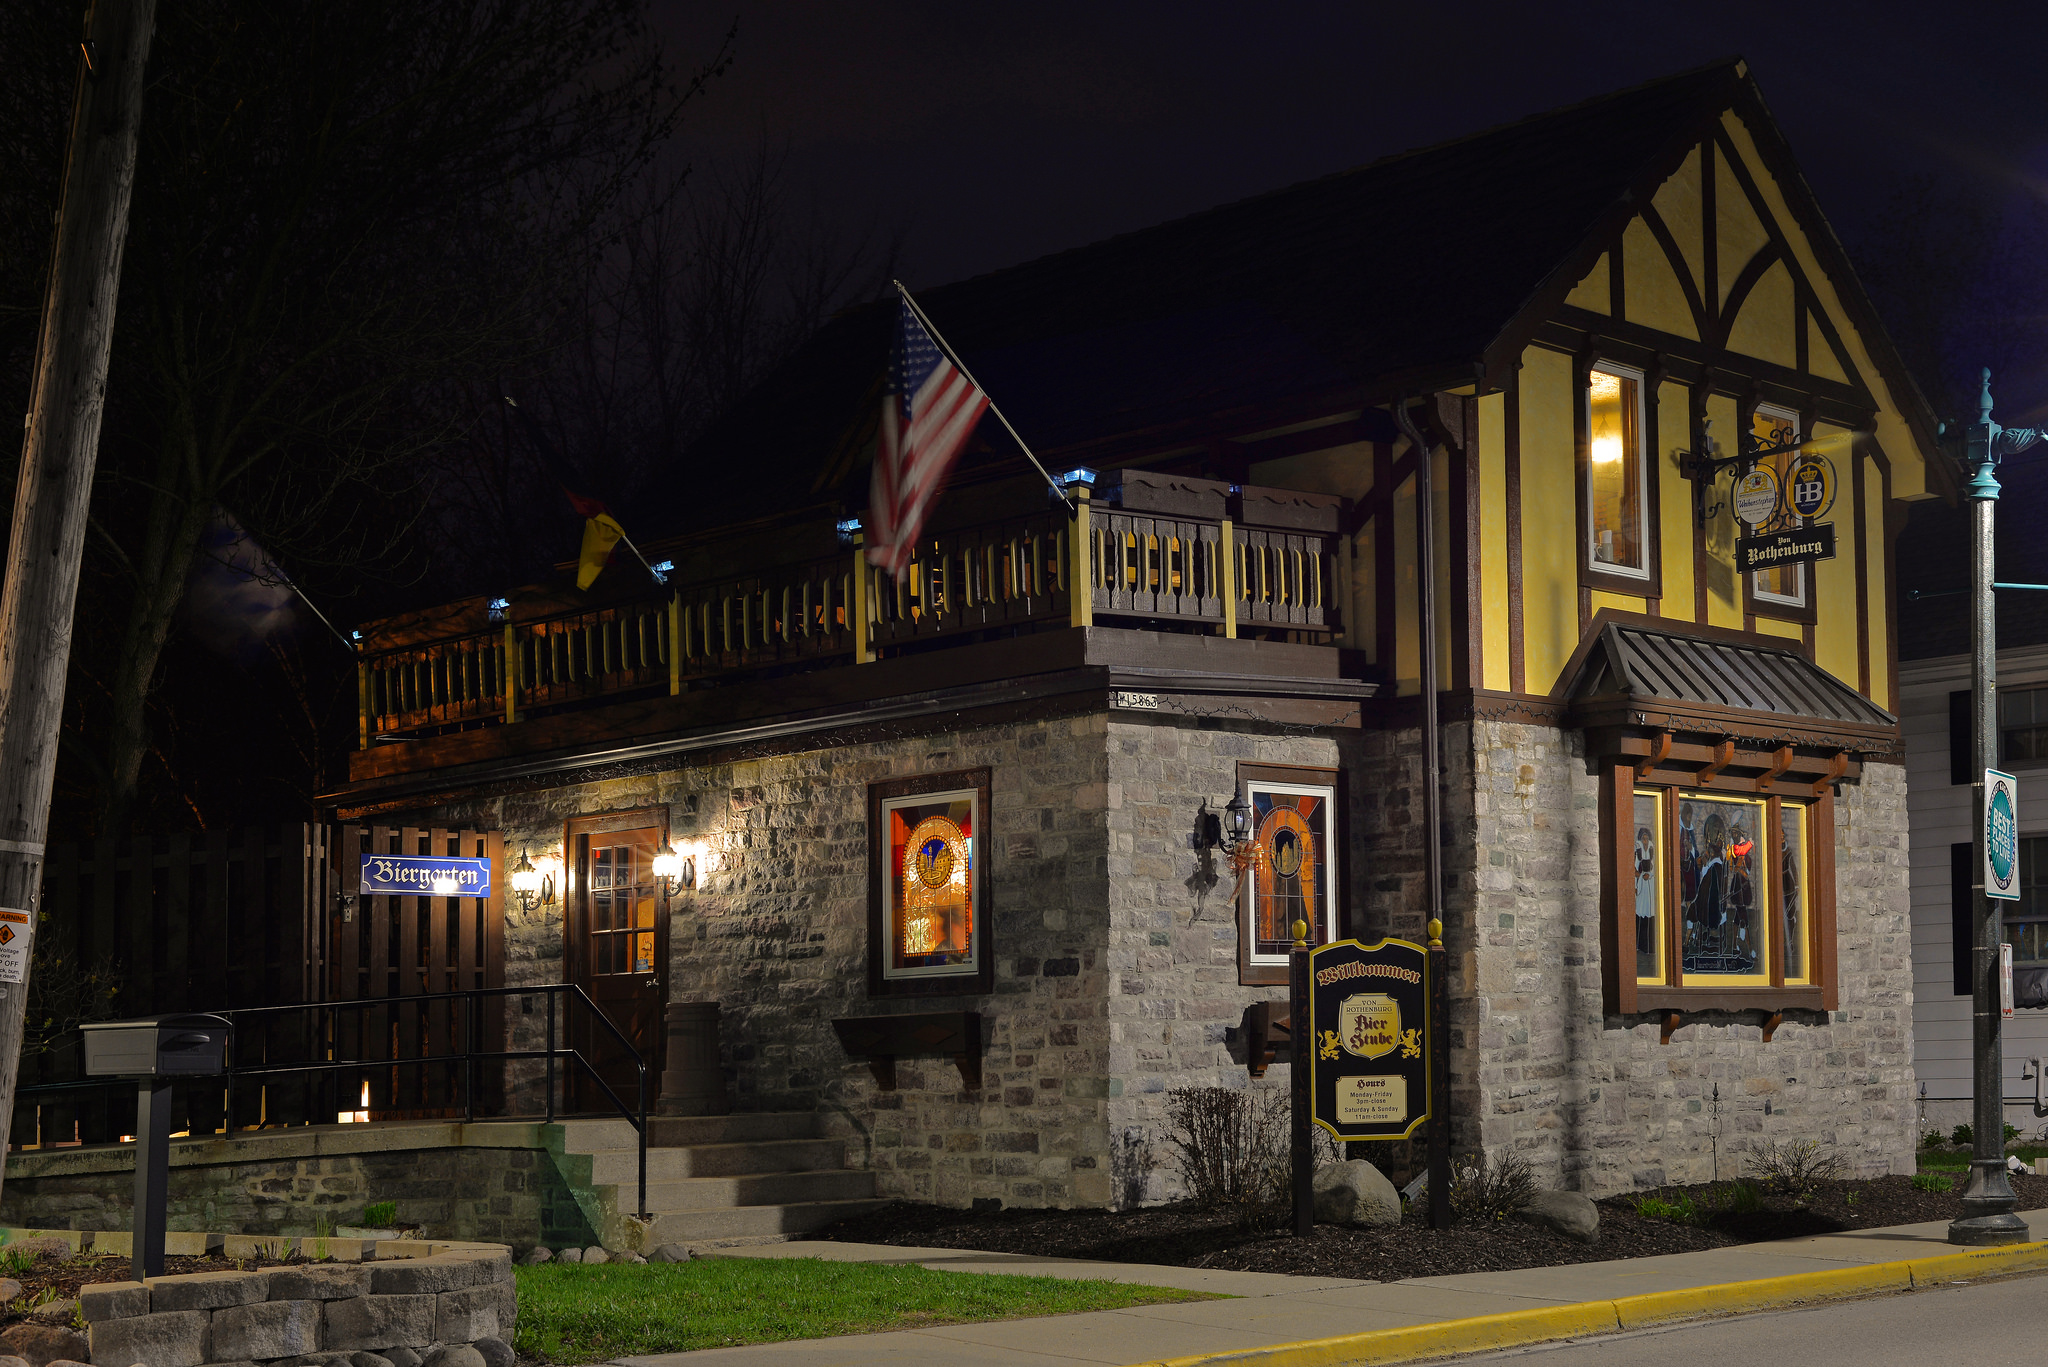 <table class=&quot;lightbox&quot;><tr><td colspan=2 class=&quot;lightbox-title&quot;>The Bier Stube</td></tr><tr><td colspan=2 class=&quot;lightbox-caption&quot;>The Von Rothenburg Bier Stube in Germantown features traditional German food, beer, and decor in its indoor beer hall and outdoor beer garden. </td></tr><tr><td colspan=2 class=&quot;lightbox-spacer&quot;></td></tr><tr class=&quot;lightbox-detail&quot;><td class=&quot;cell-title&quot;>Source: </td><td class=&quot;cell-value&quot;>From Flickr. Photograph by Jim Bauer. CC BY-ND 2.0.<br /><a href=&quot;https://www.flickr.com/photos/lens-cap/14146135042/&quot; target=&quot;_blank&quot;>Flickr</a></td></tr><tr class=&quot;filler-row&quot;><td colspan=2>&nbsp;</td></tr></table>